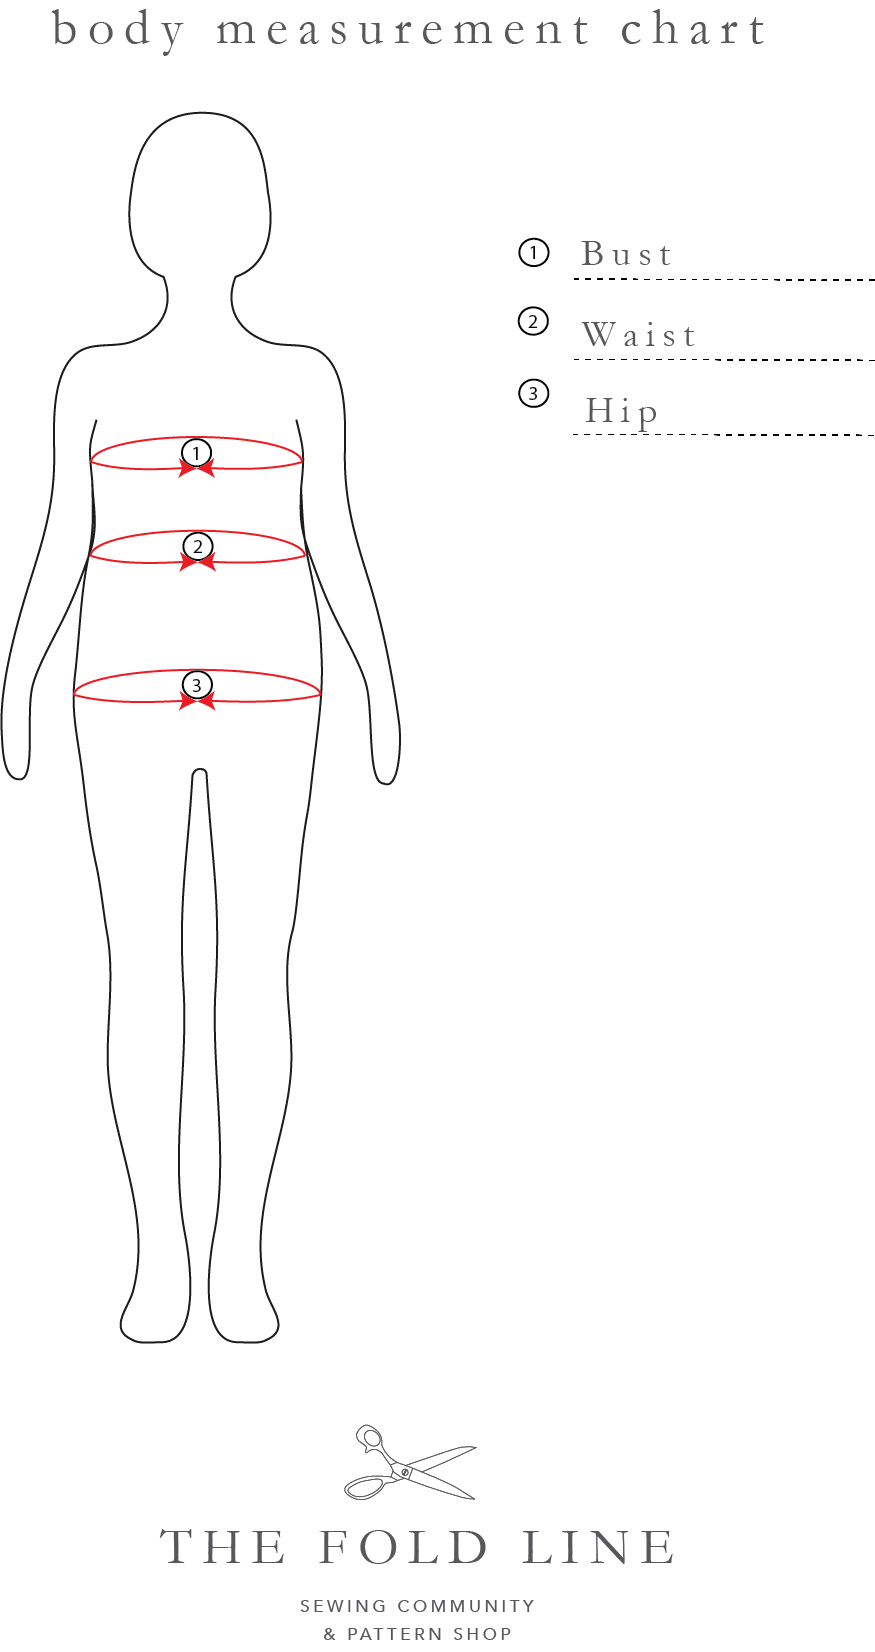 It is a graphic of Printable Measuring Tape for Body regarding wrist